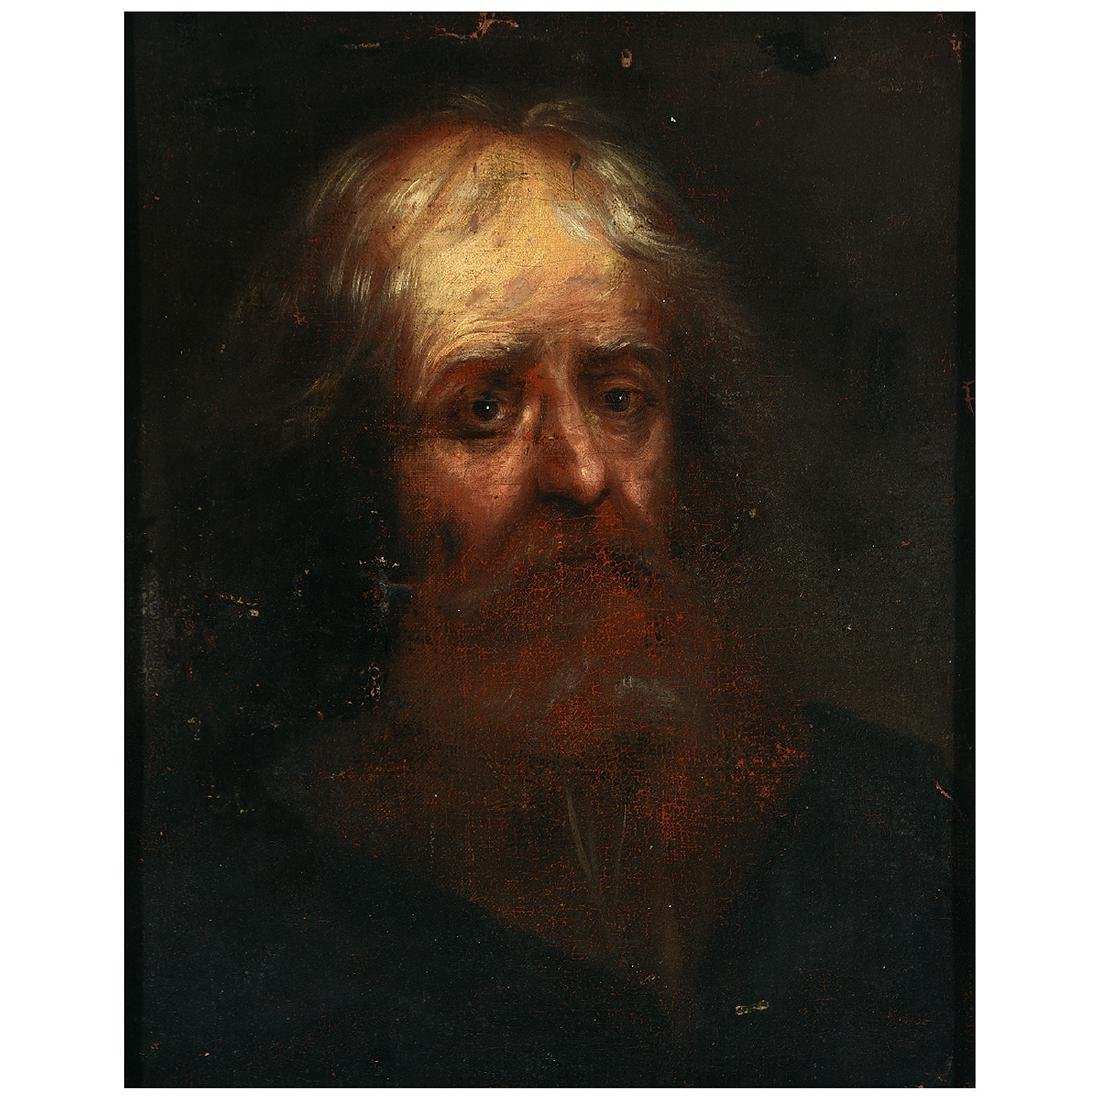 Old master style portrait of a man